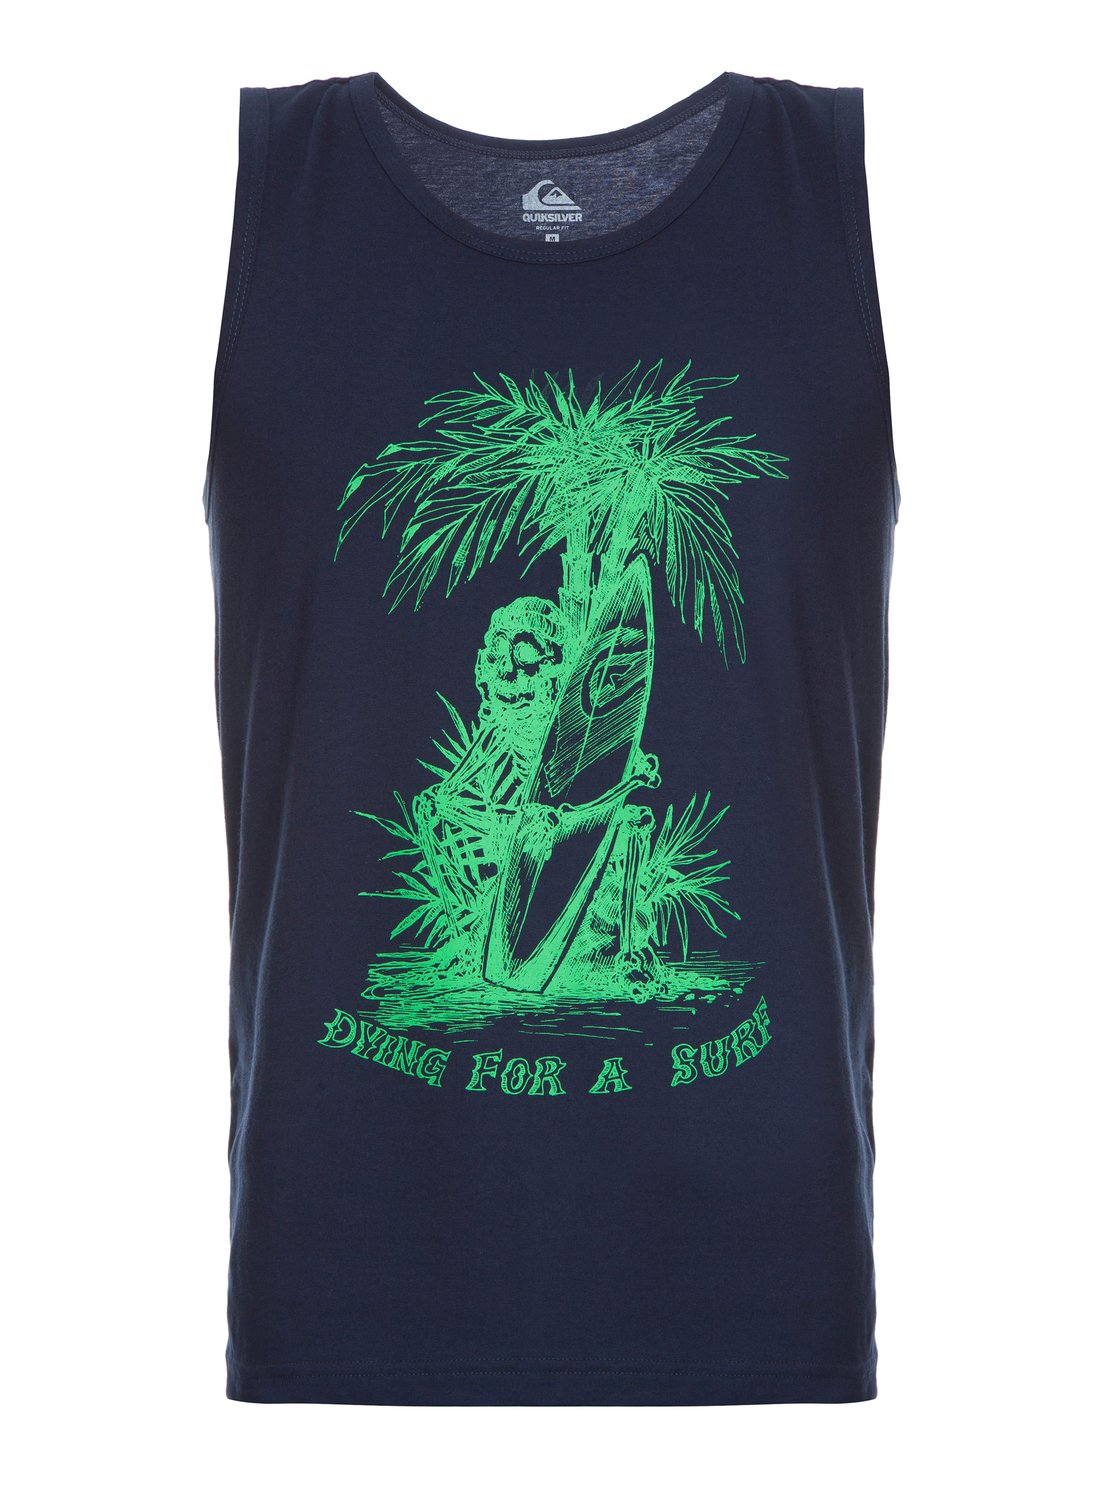 0 Regata masculina Dying for Surf BR61231723 Quiksilver c79421e5d01